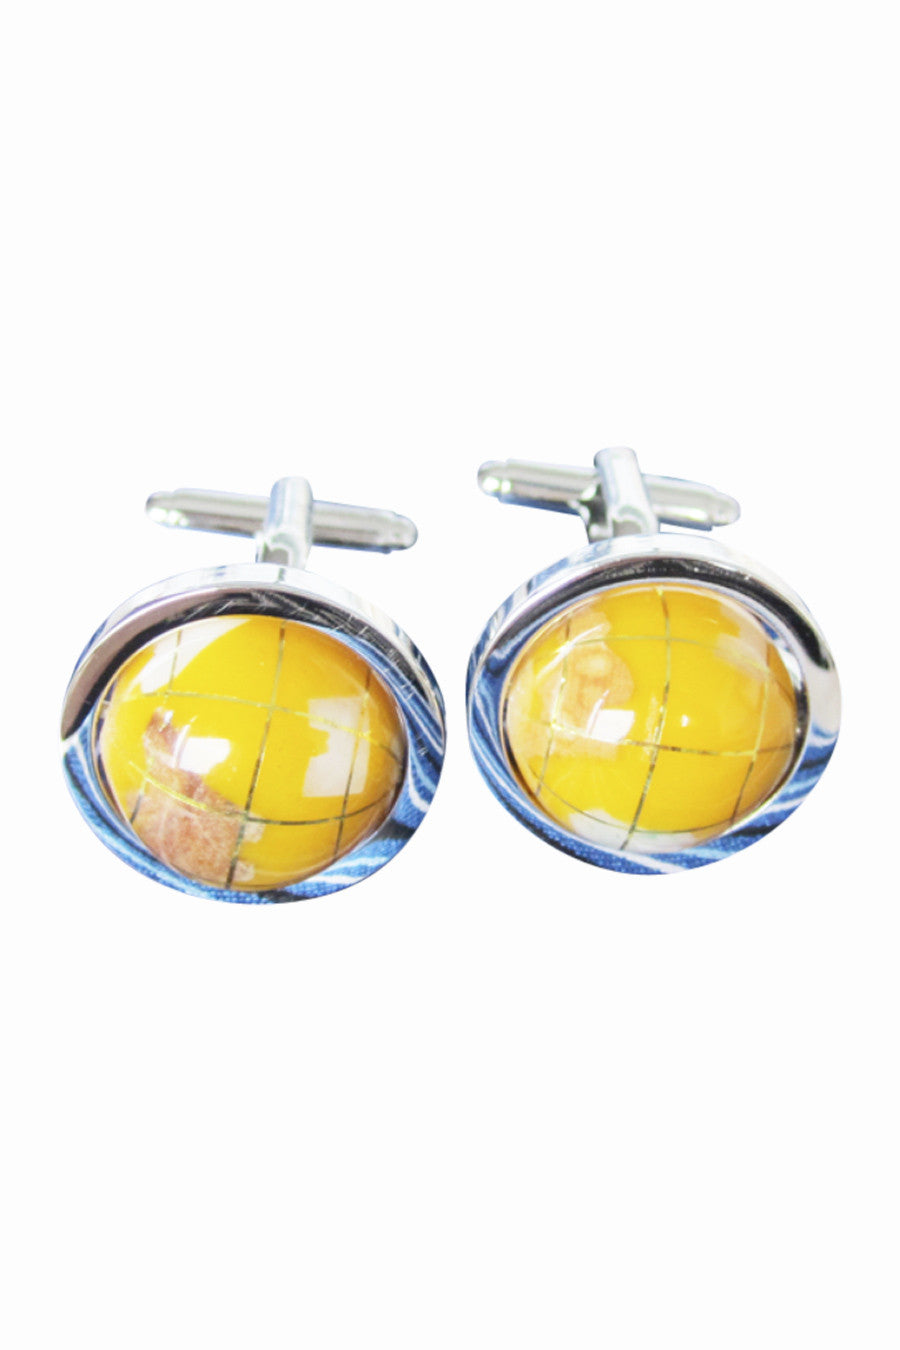 Rotatable Globe Men's Cufflinks In Yellow